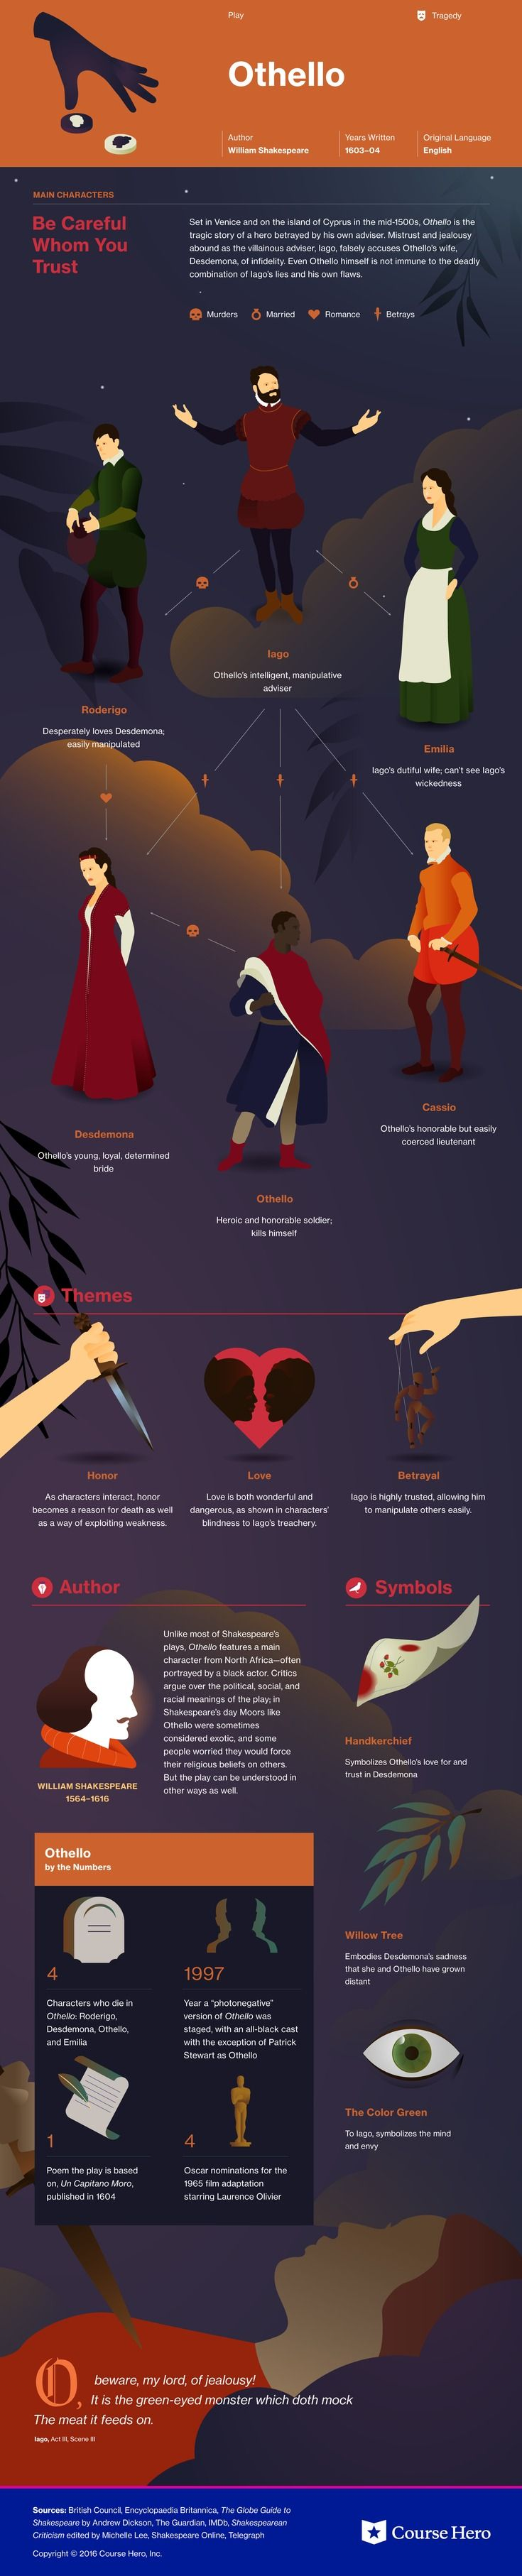 othello infographic course hero my humanities nerdiness study guide for william shakespeare s othello including scene summary character analysis and more learn all about othello ask questions